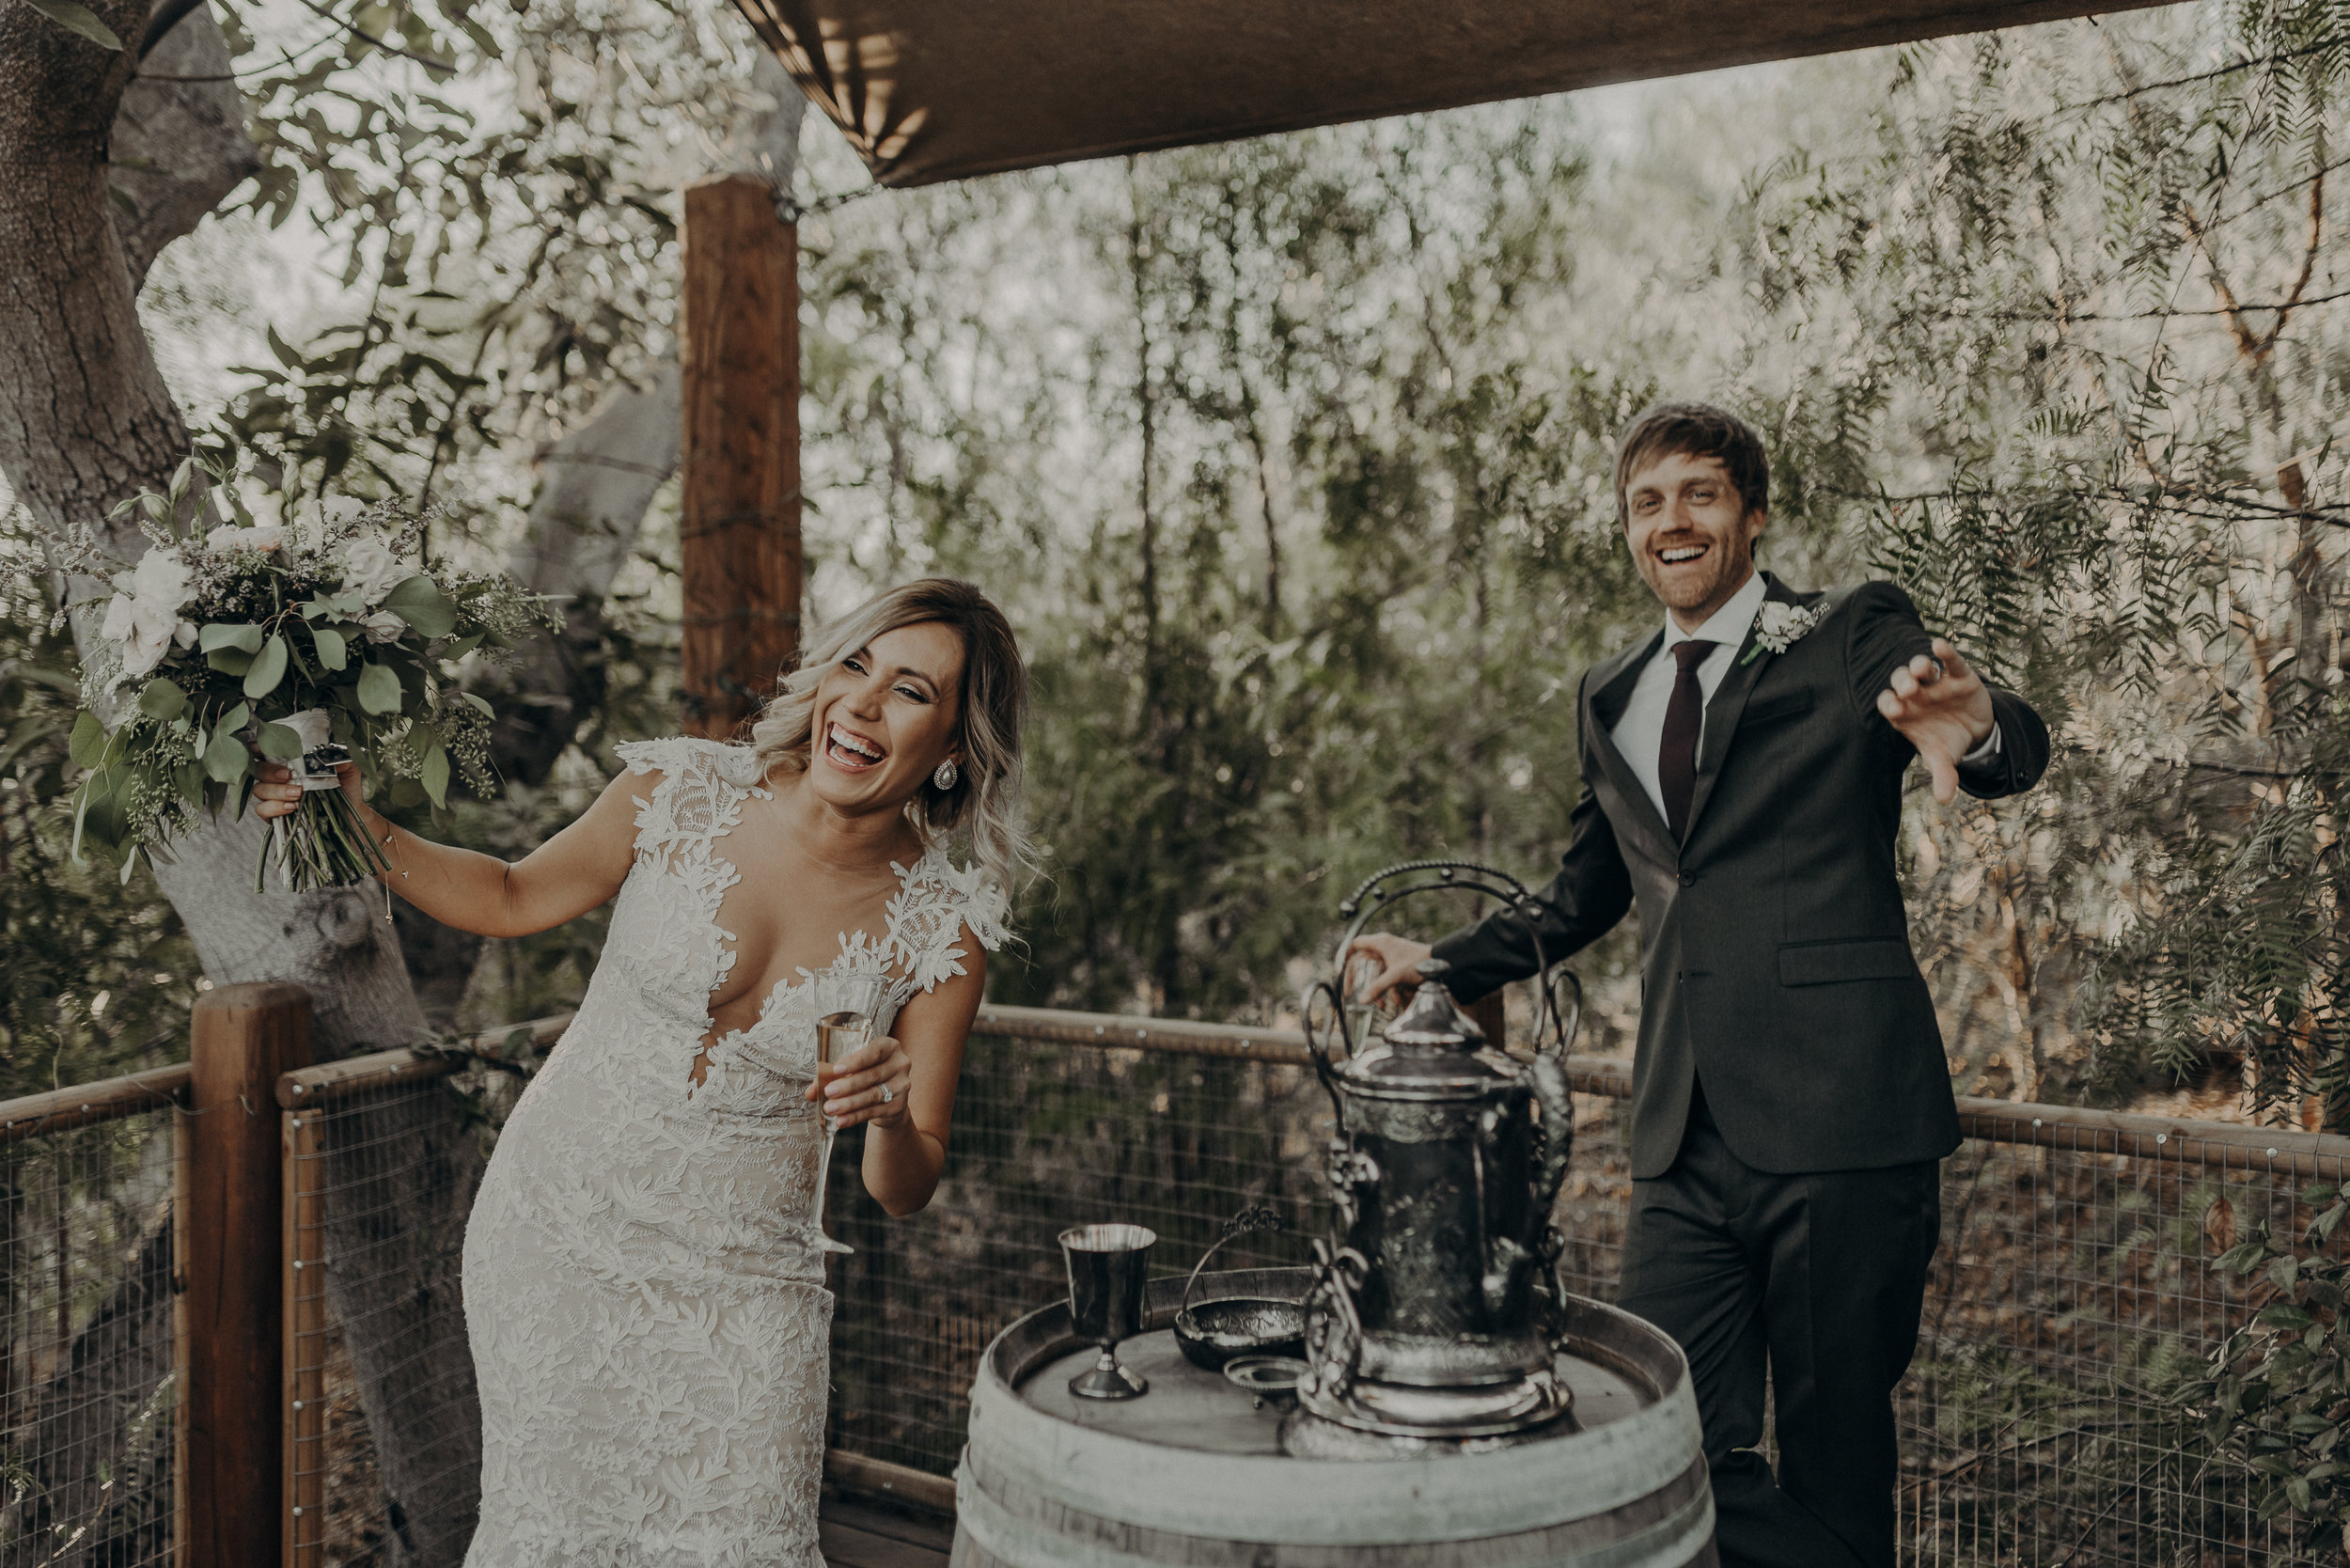 Isaiah + Taylor Photography - Los Angeles Wedding Photographer - Open Air Resort Wedding-98.jpg